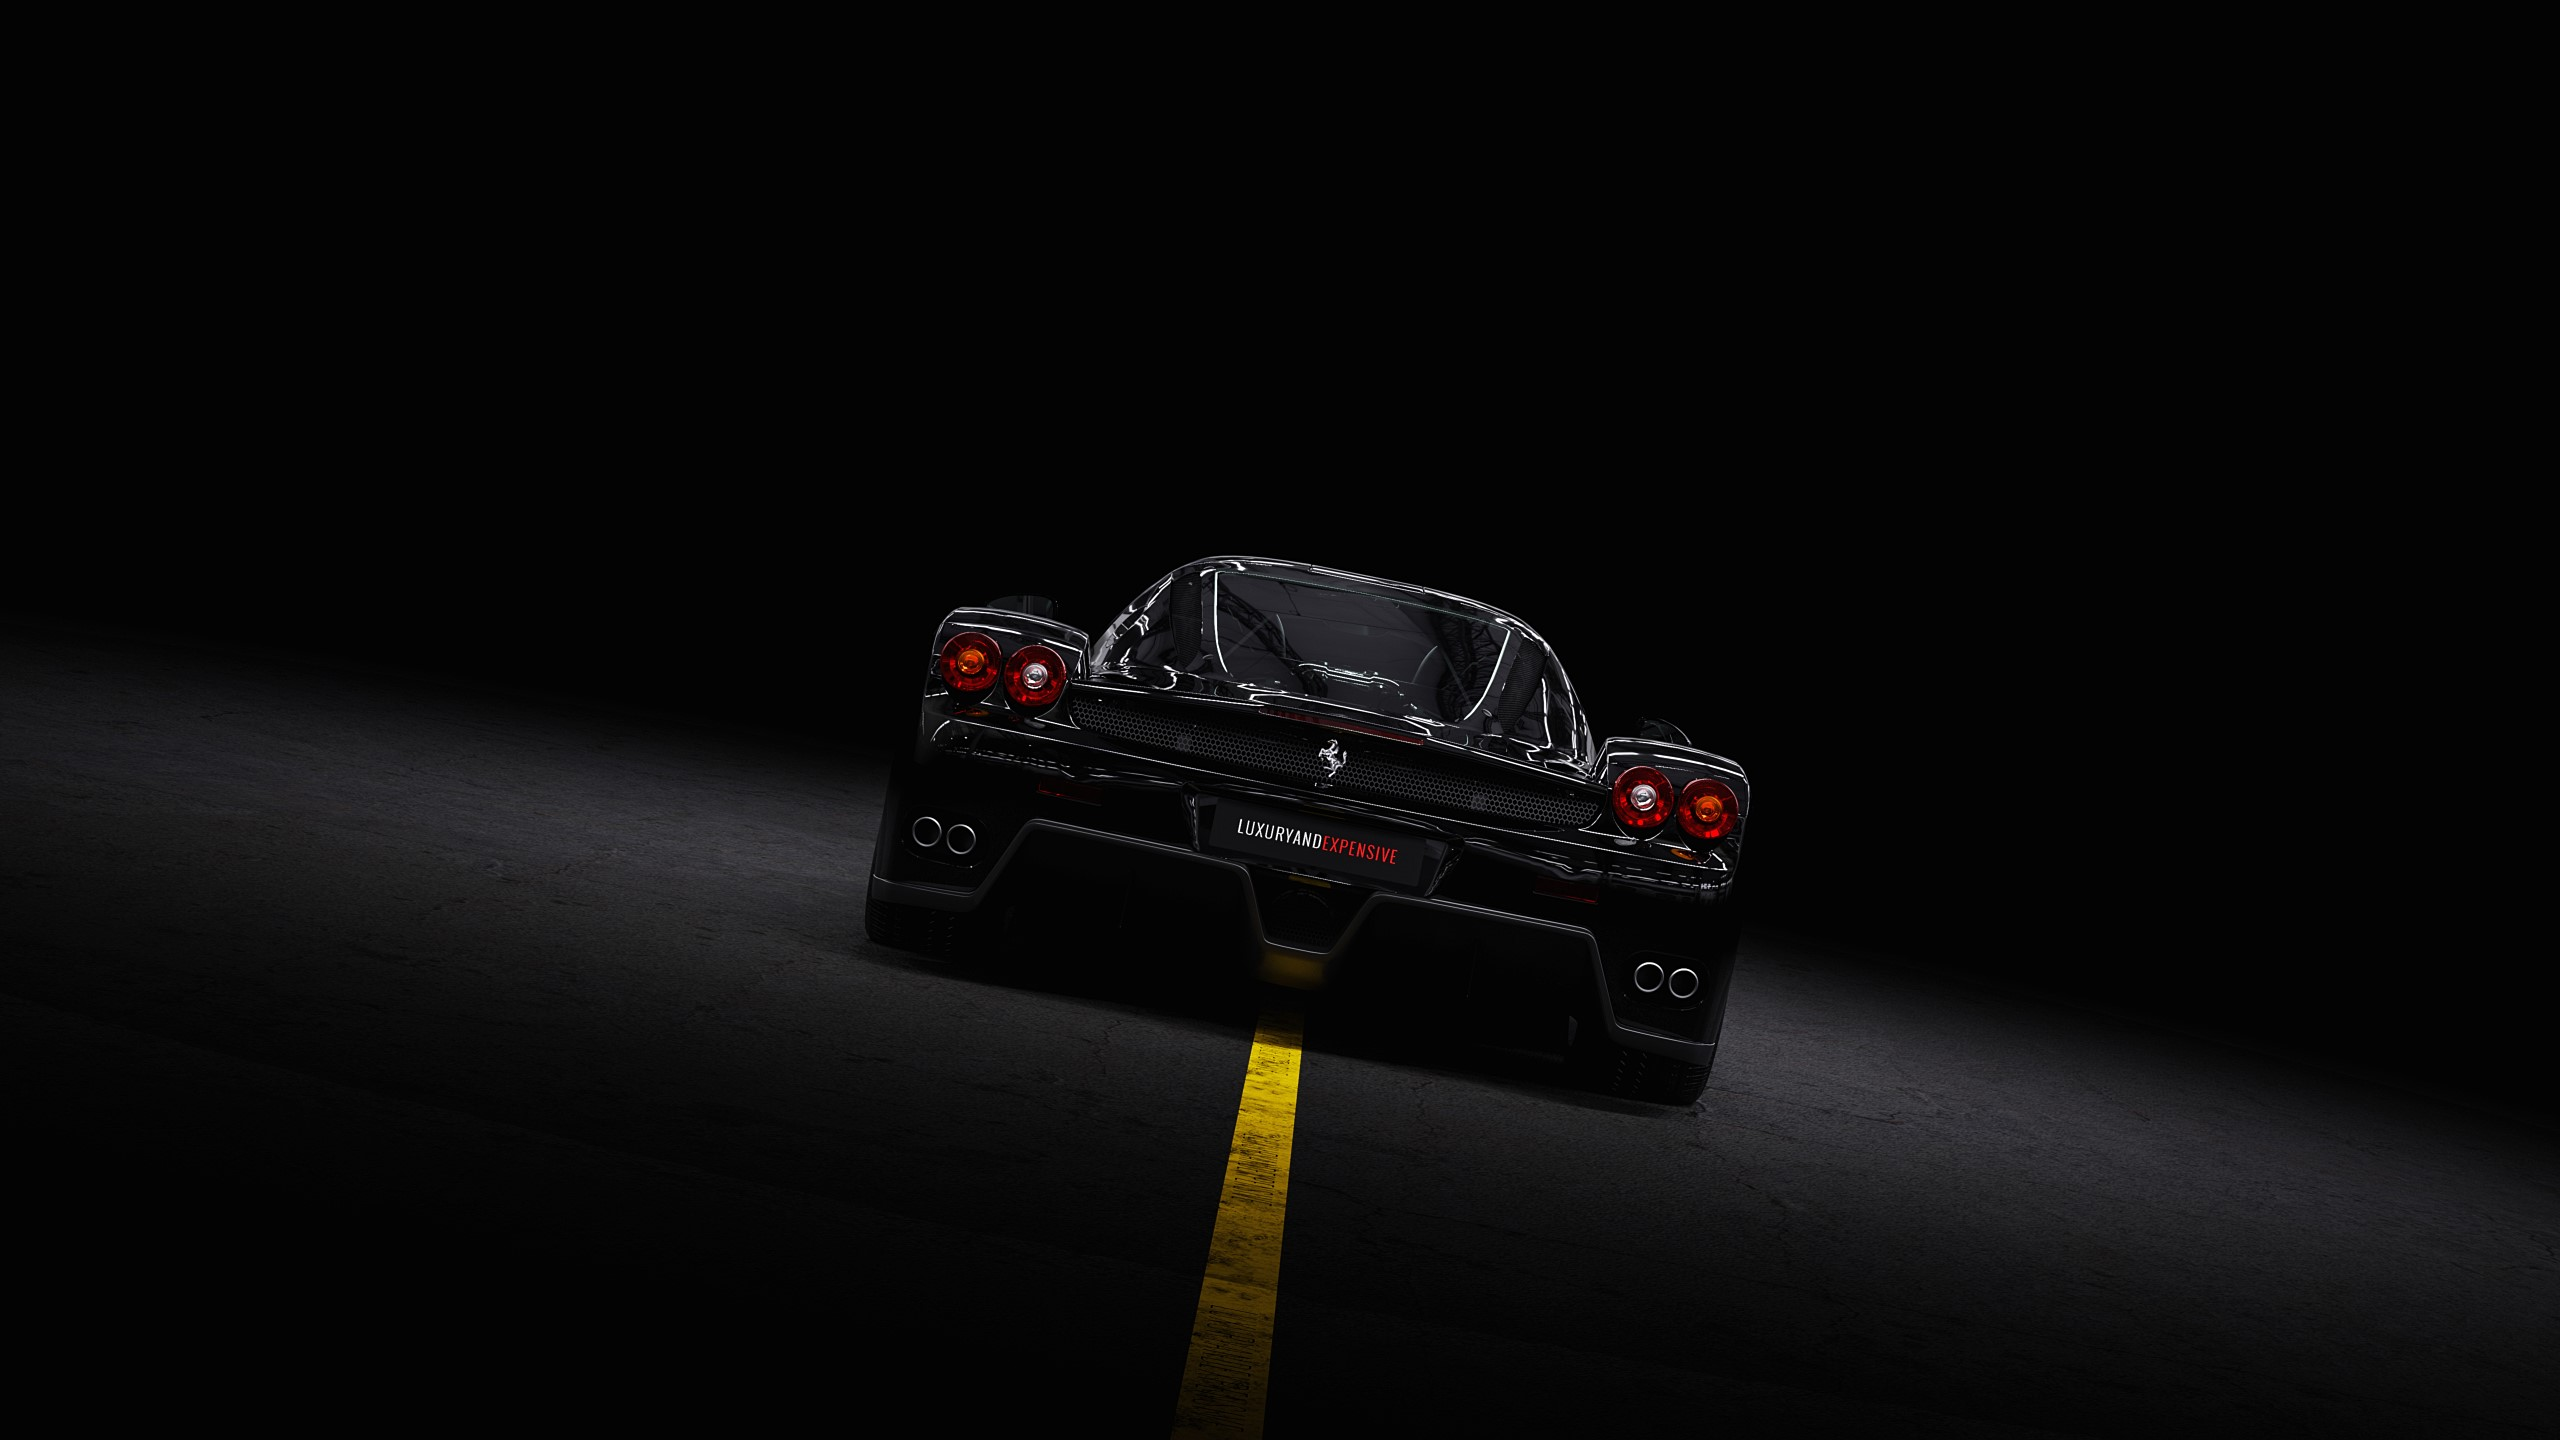 Ferrari Enzo Black In Stock For Sale